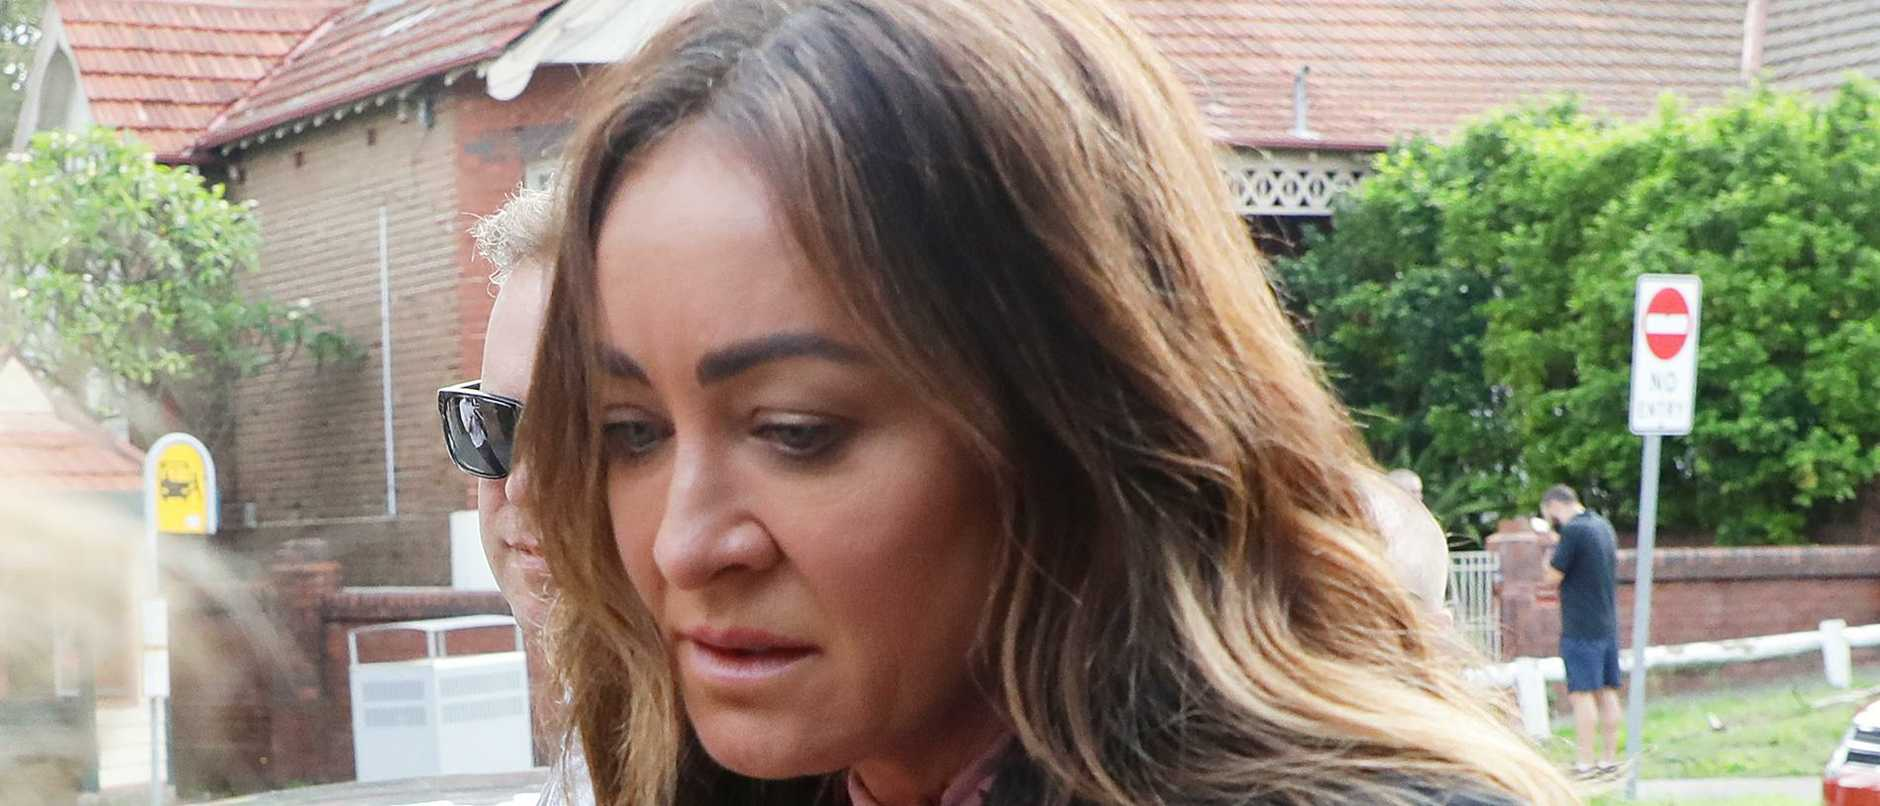 Michelle Bridges' lawyer argued for leniency on the basis she had helped Australians lose two million kilograms in weight.